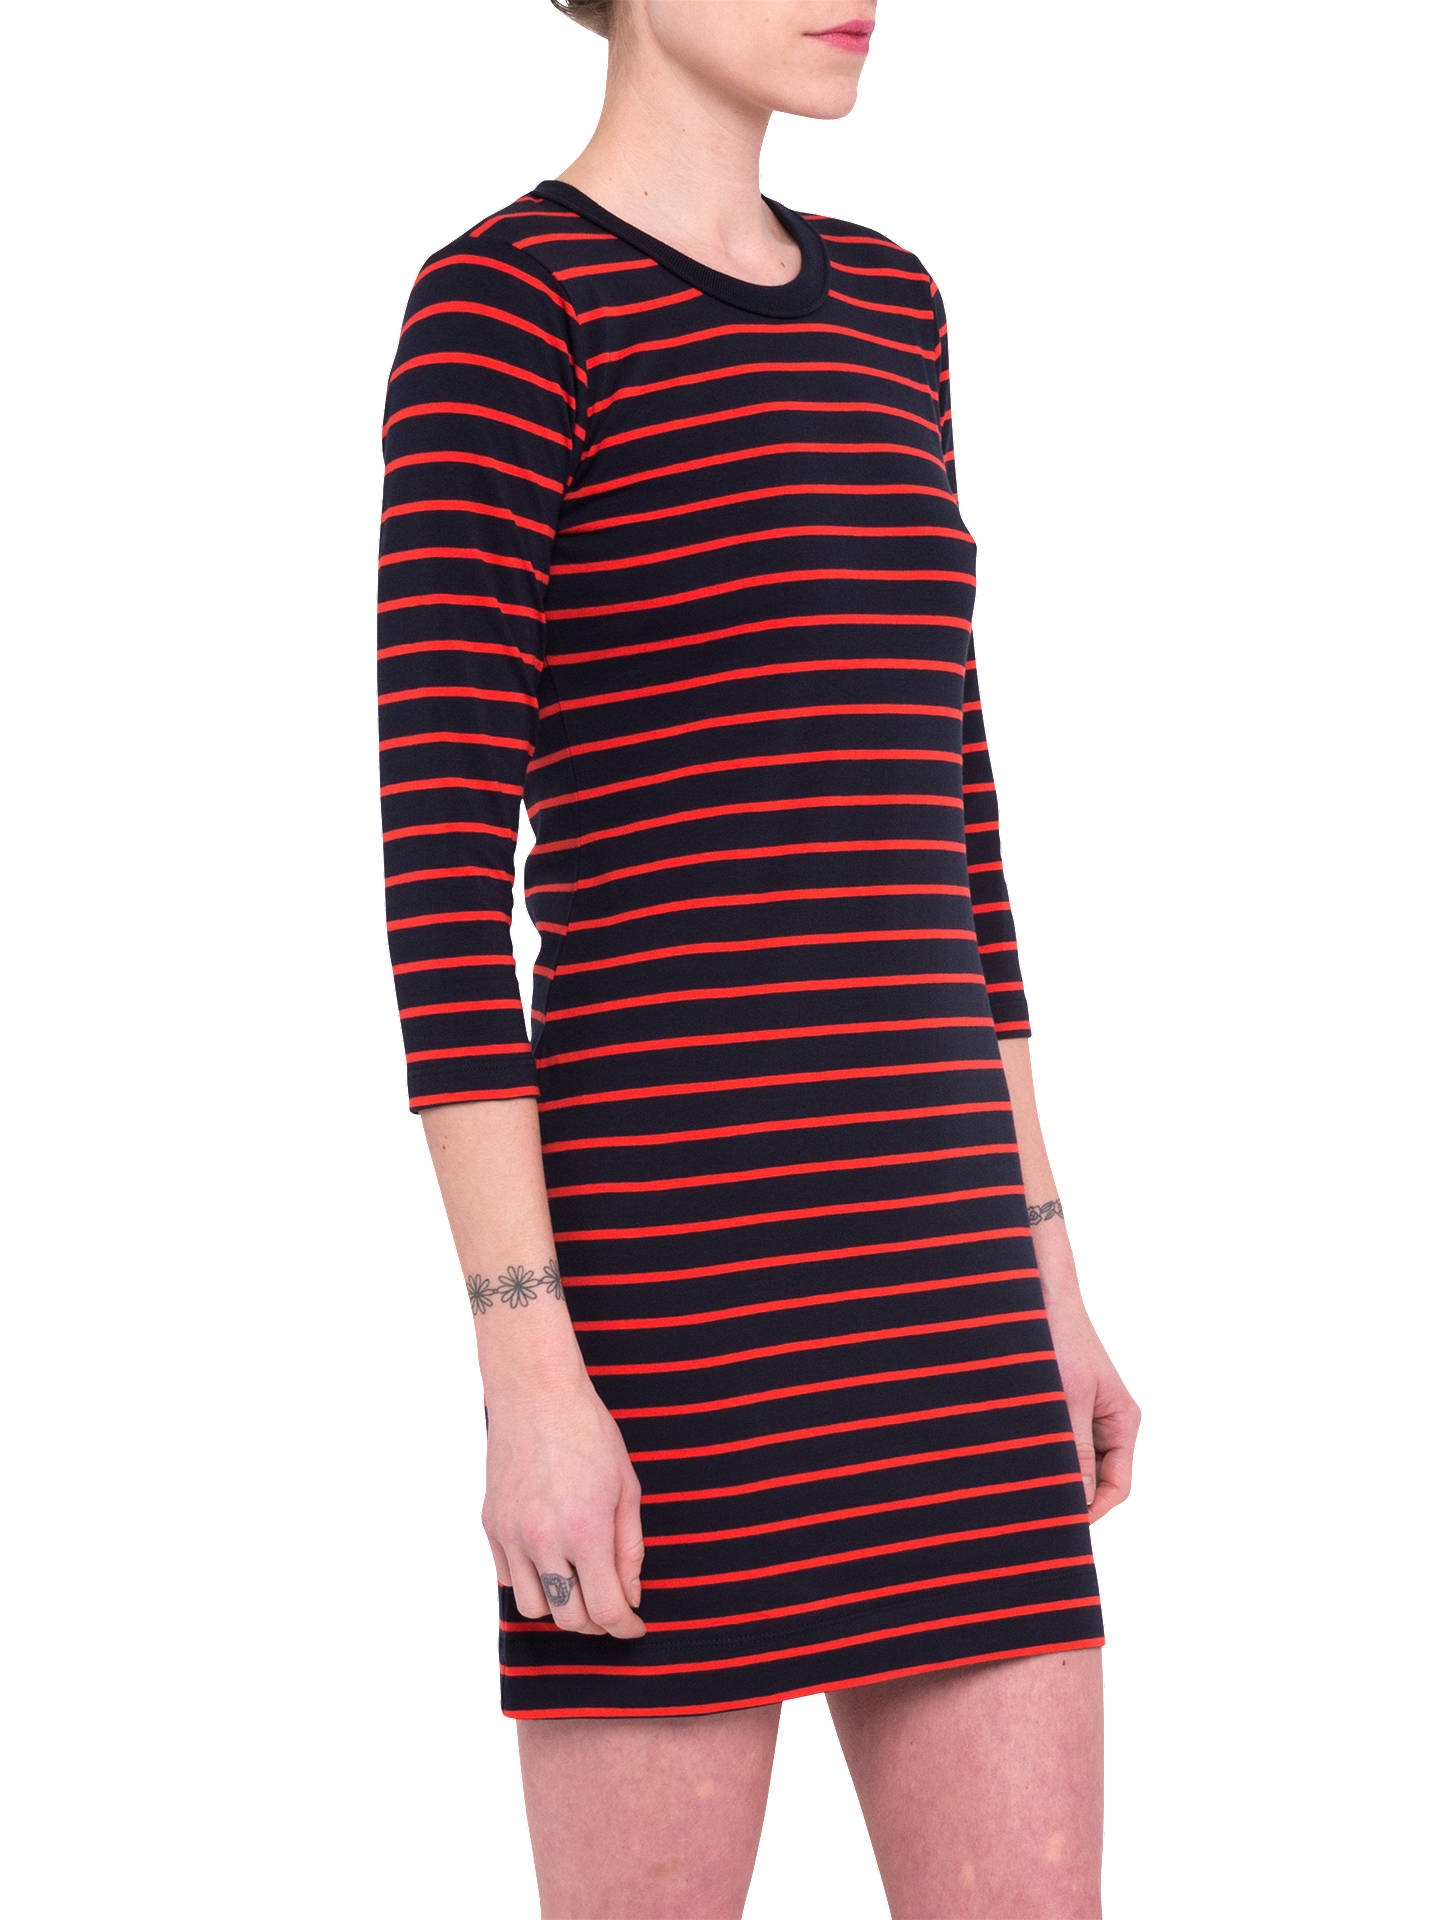 Buy French Connection Tim Tim Striped Dress, Black/Red, M Online at johnlewis.com